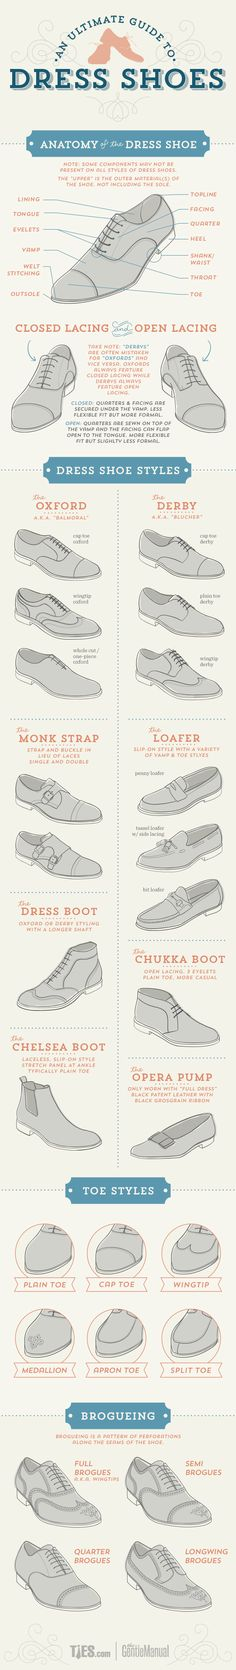 An ultimate guide to men's dress shoes. #shoes #mensshoes #mensstyle #mensfashion #dressshoes